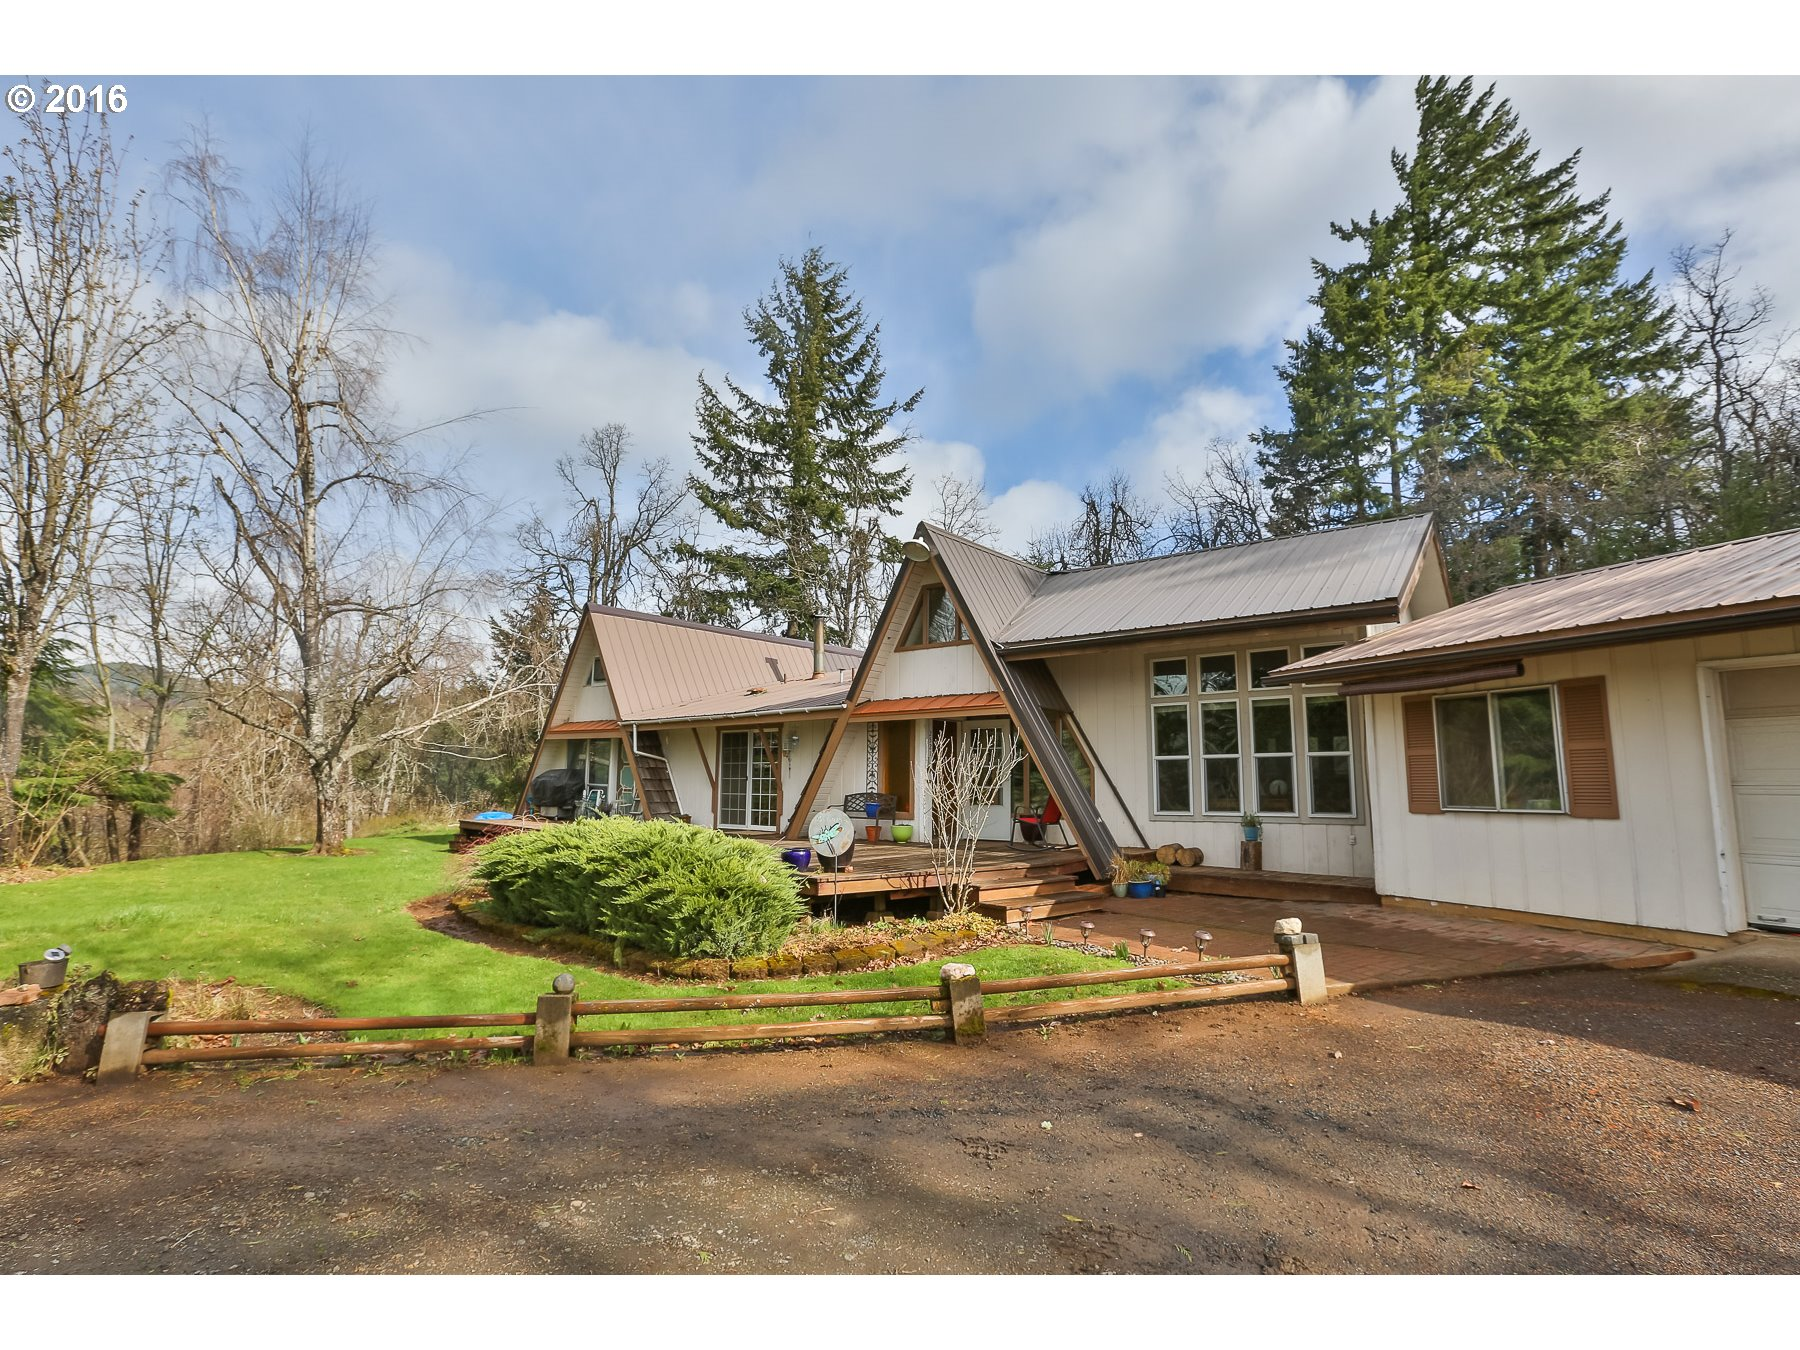 2521 Kingsley Rd, Hood River, OR